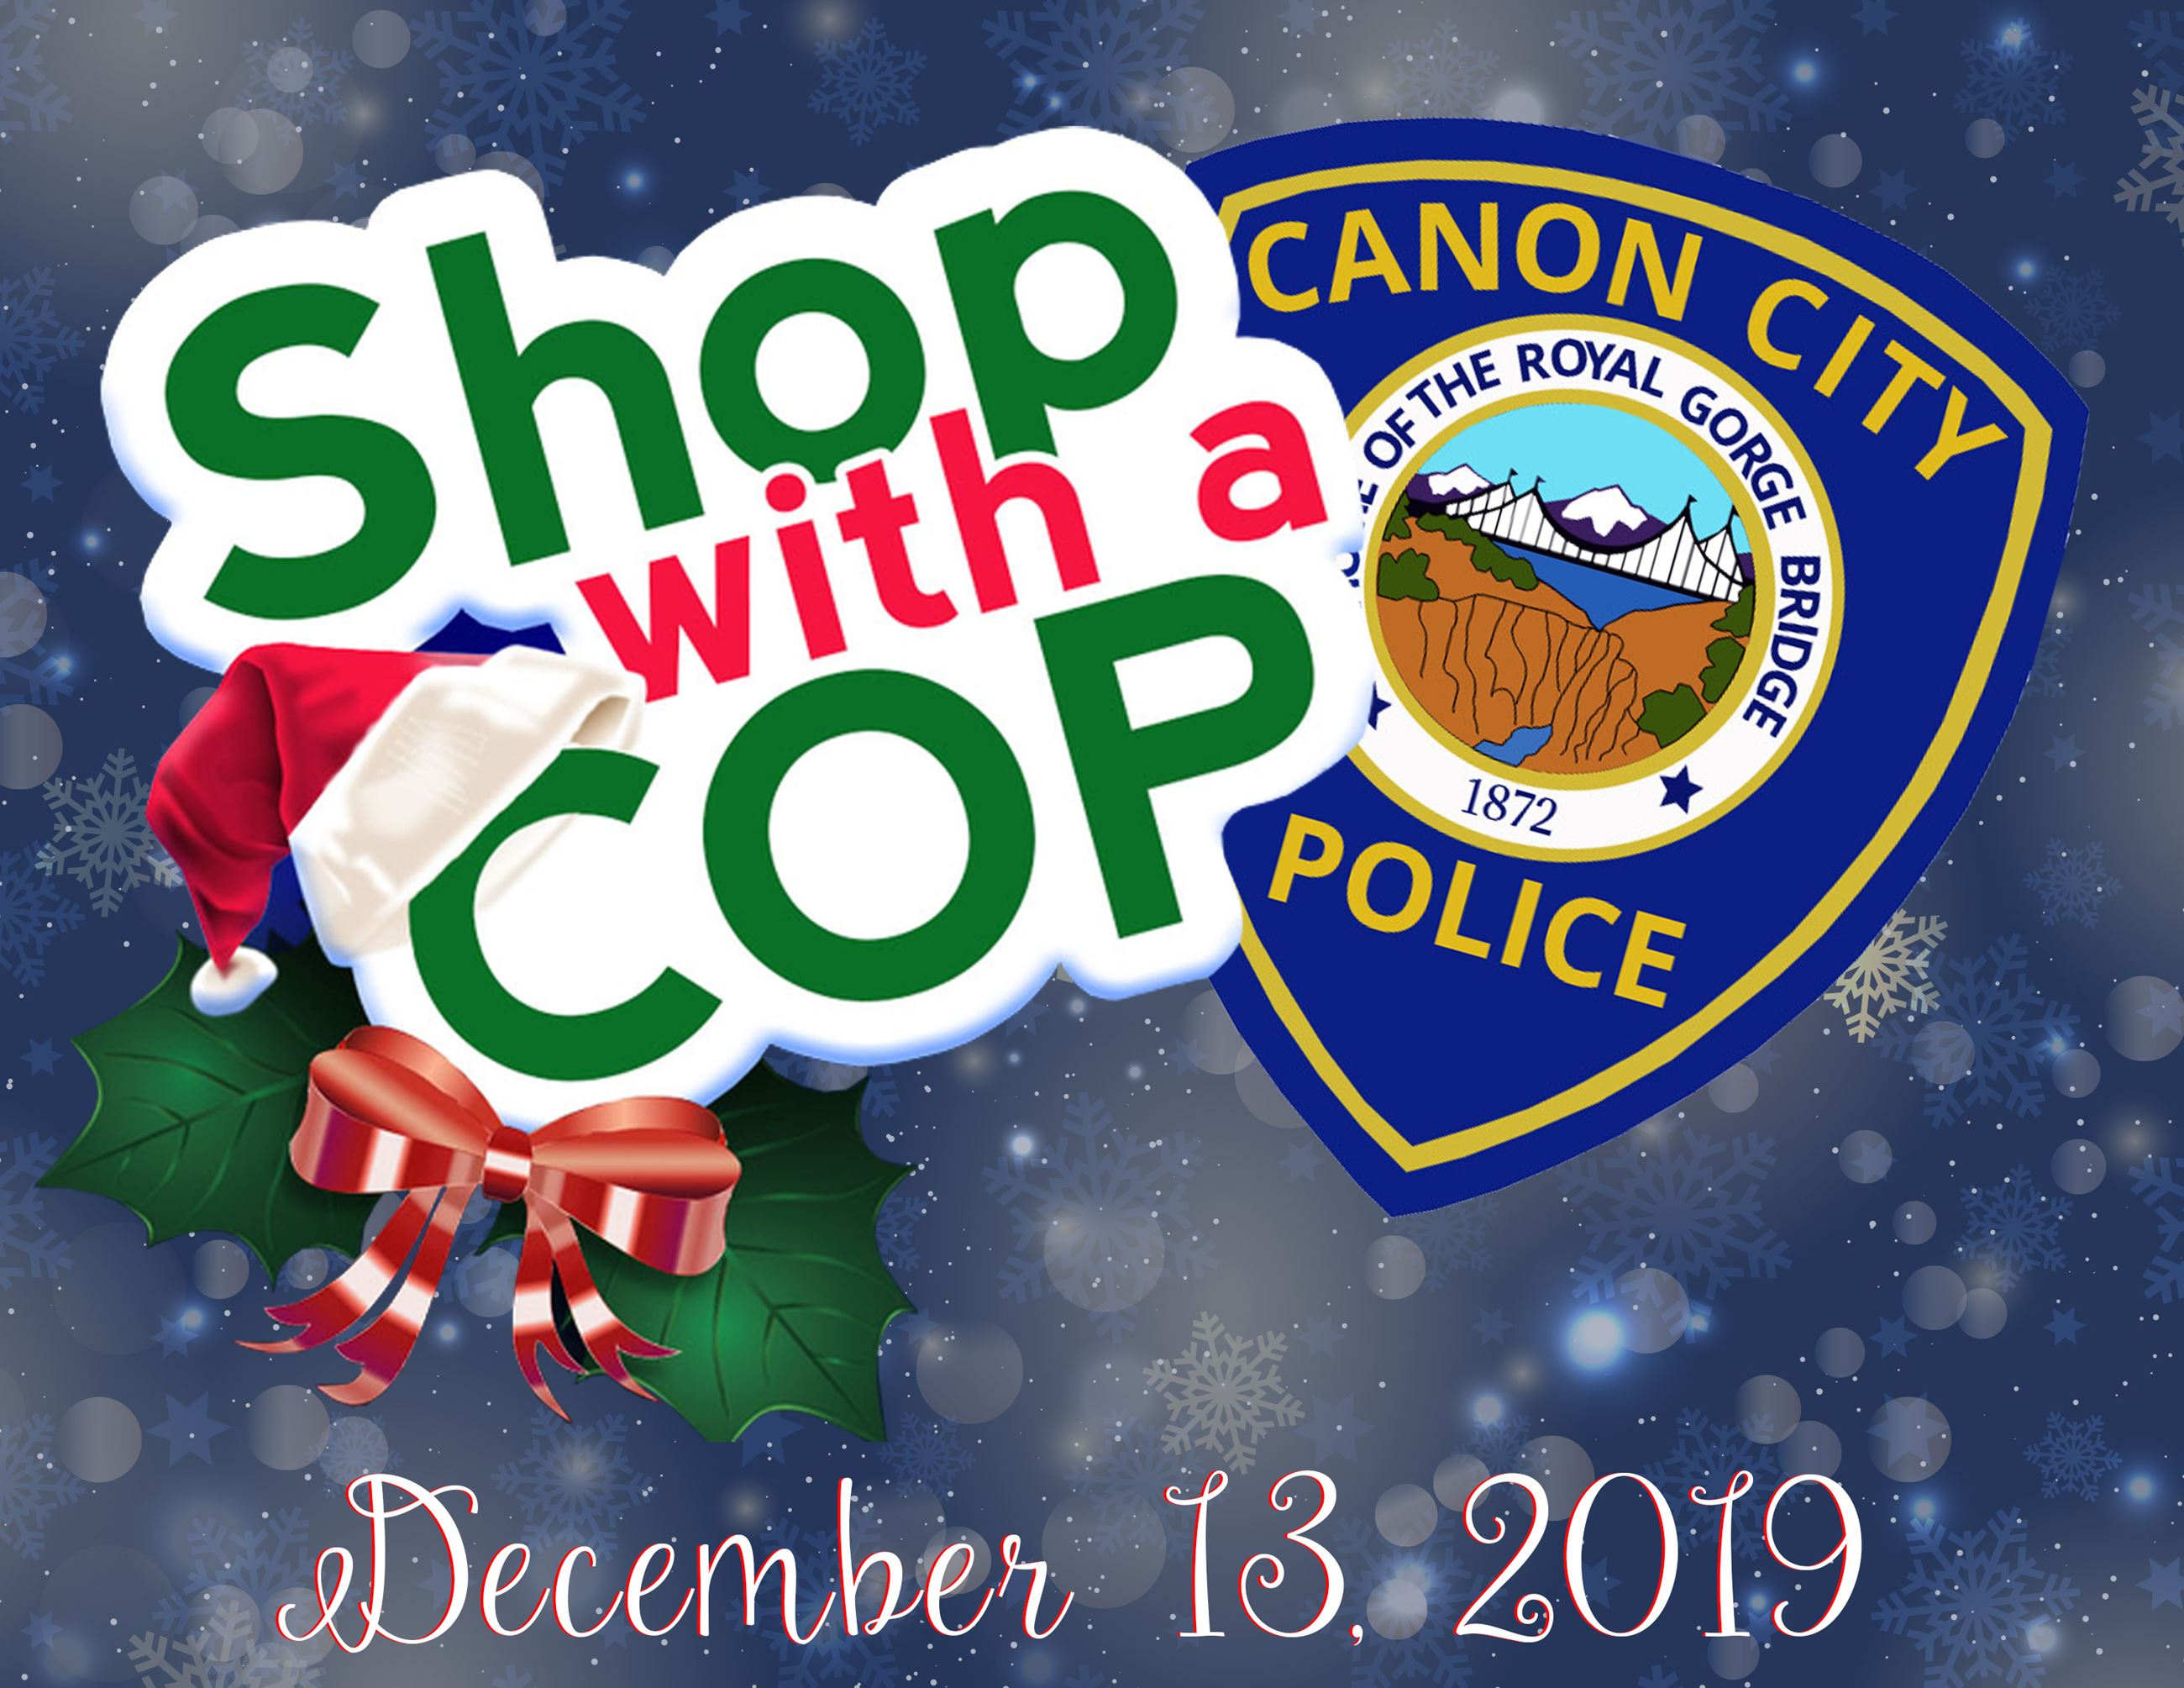 Shop With A Cop on Dec 13, 2019 flyer